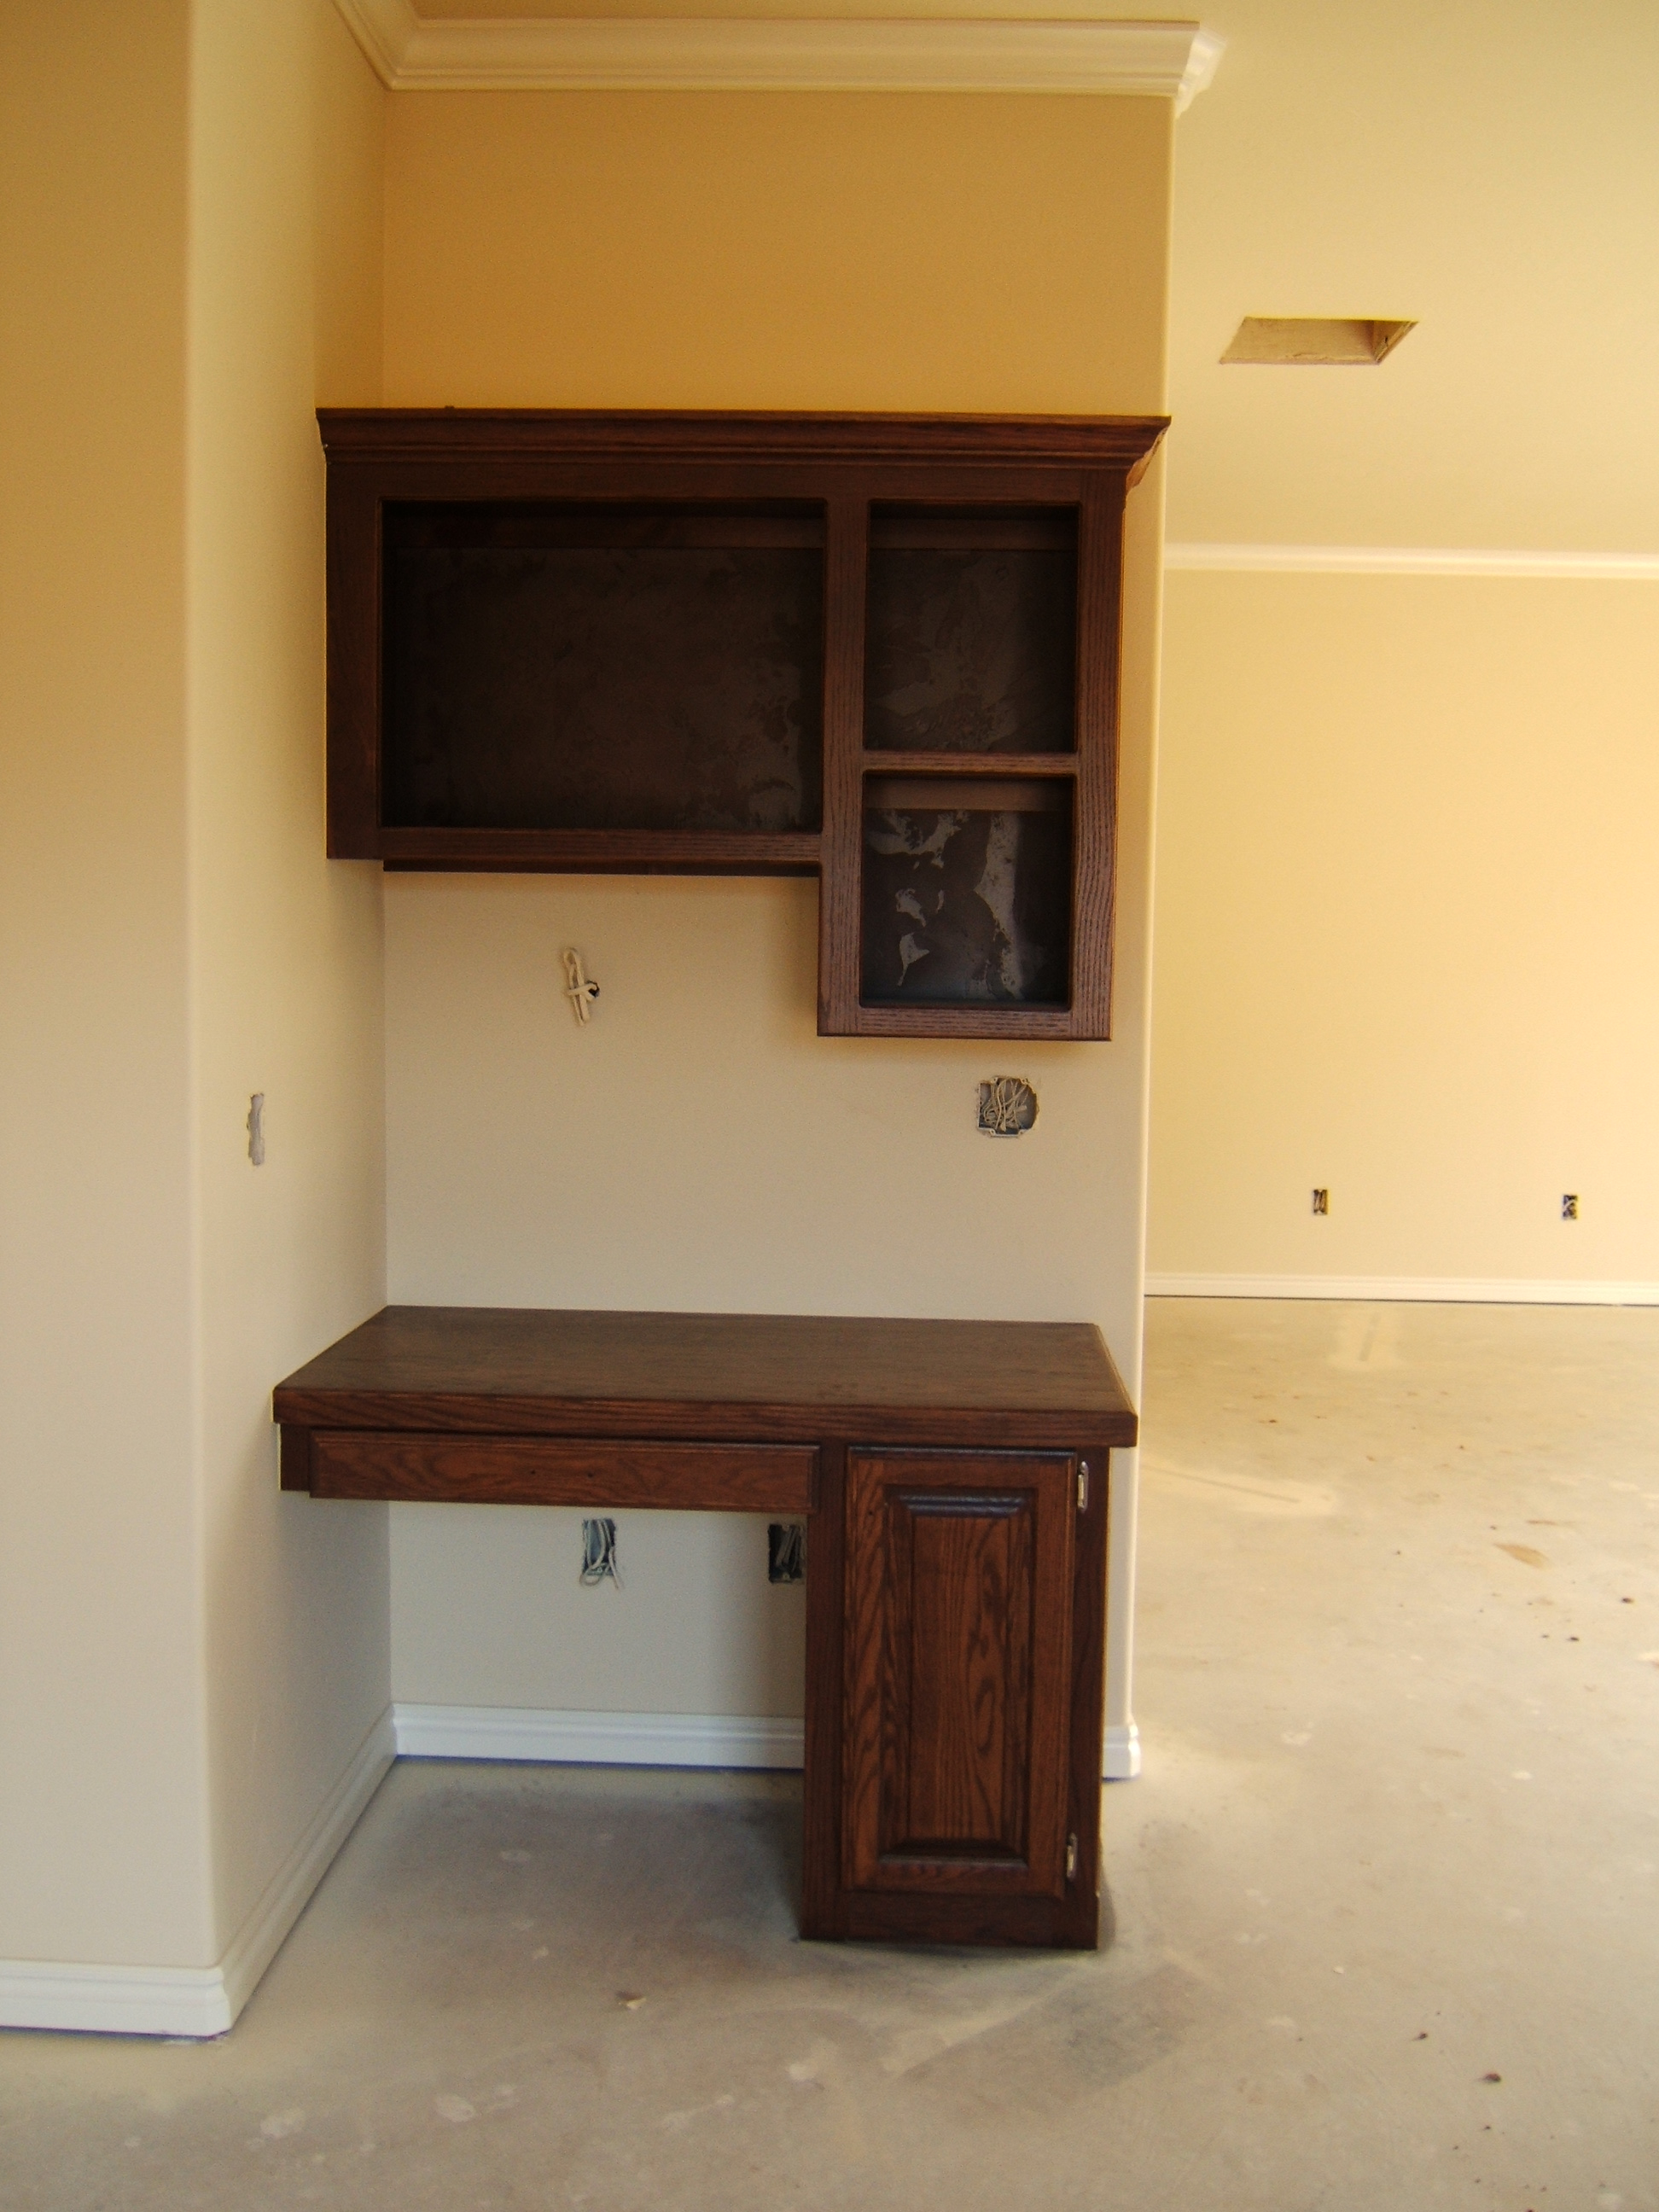 Spacious master suite with recessed ceiling and crown for Recessed area